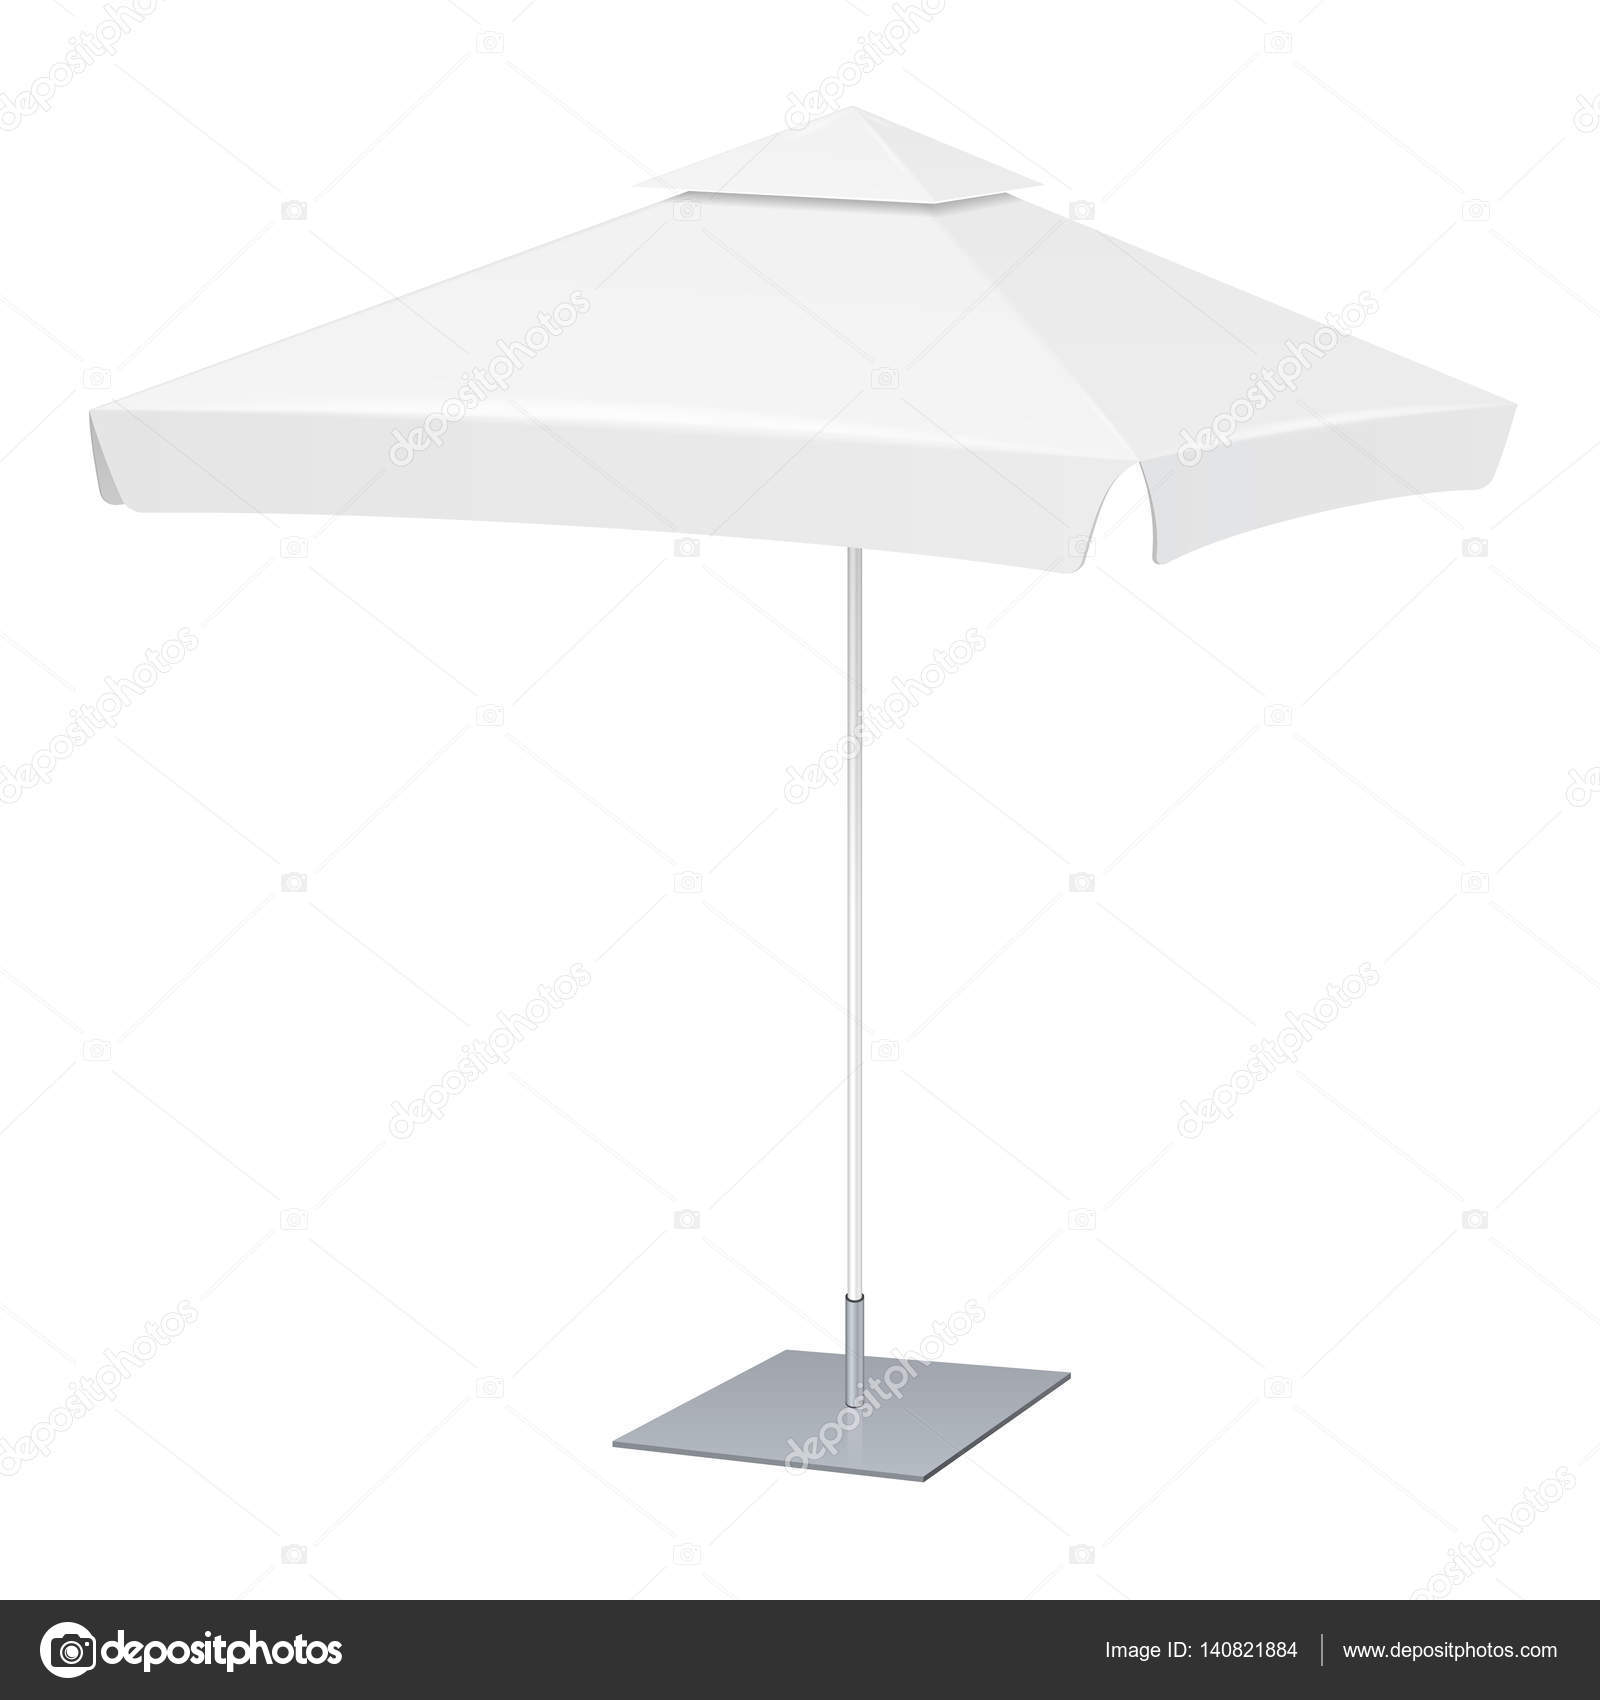 White Umbrella Marquees Promotional Square Advertising Outdoor Garden White Umbrella